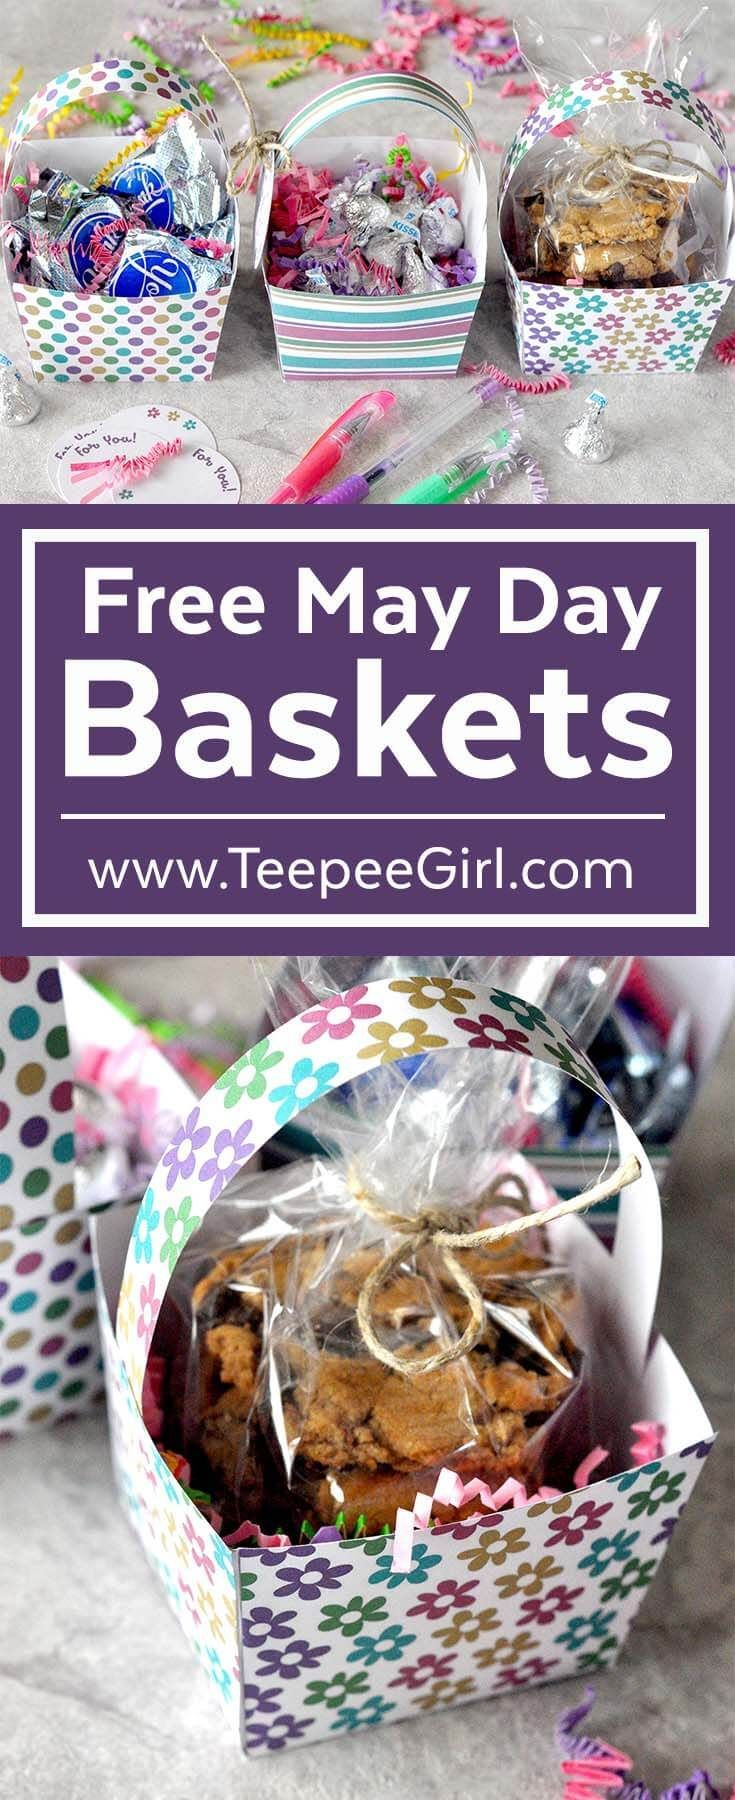 These free May Day basket printables are easy to assemble and perfect for showing love & friendship! Plus, there's a free gift tag! www.TeepeeGirl.com